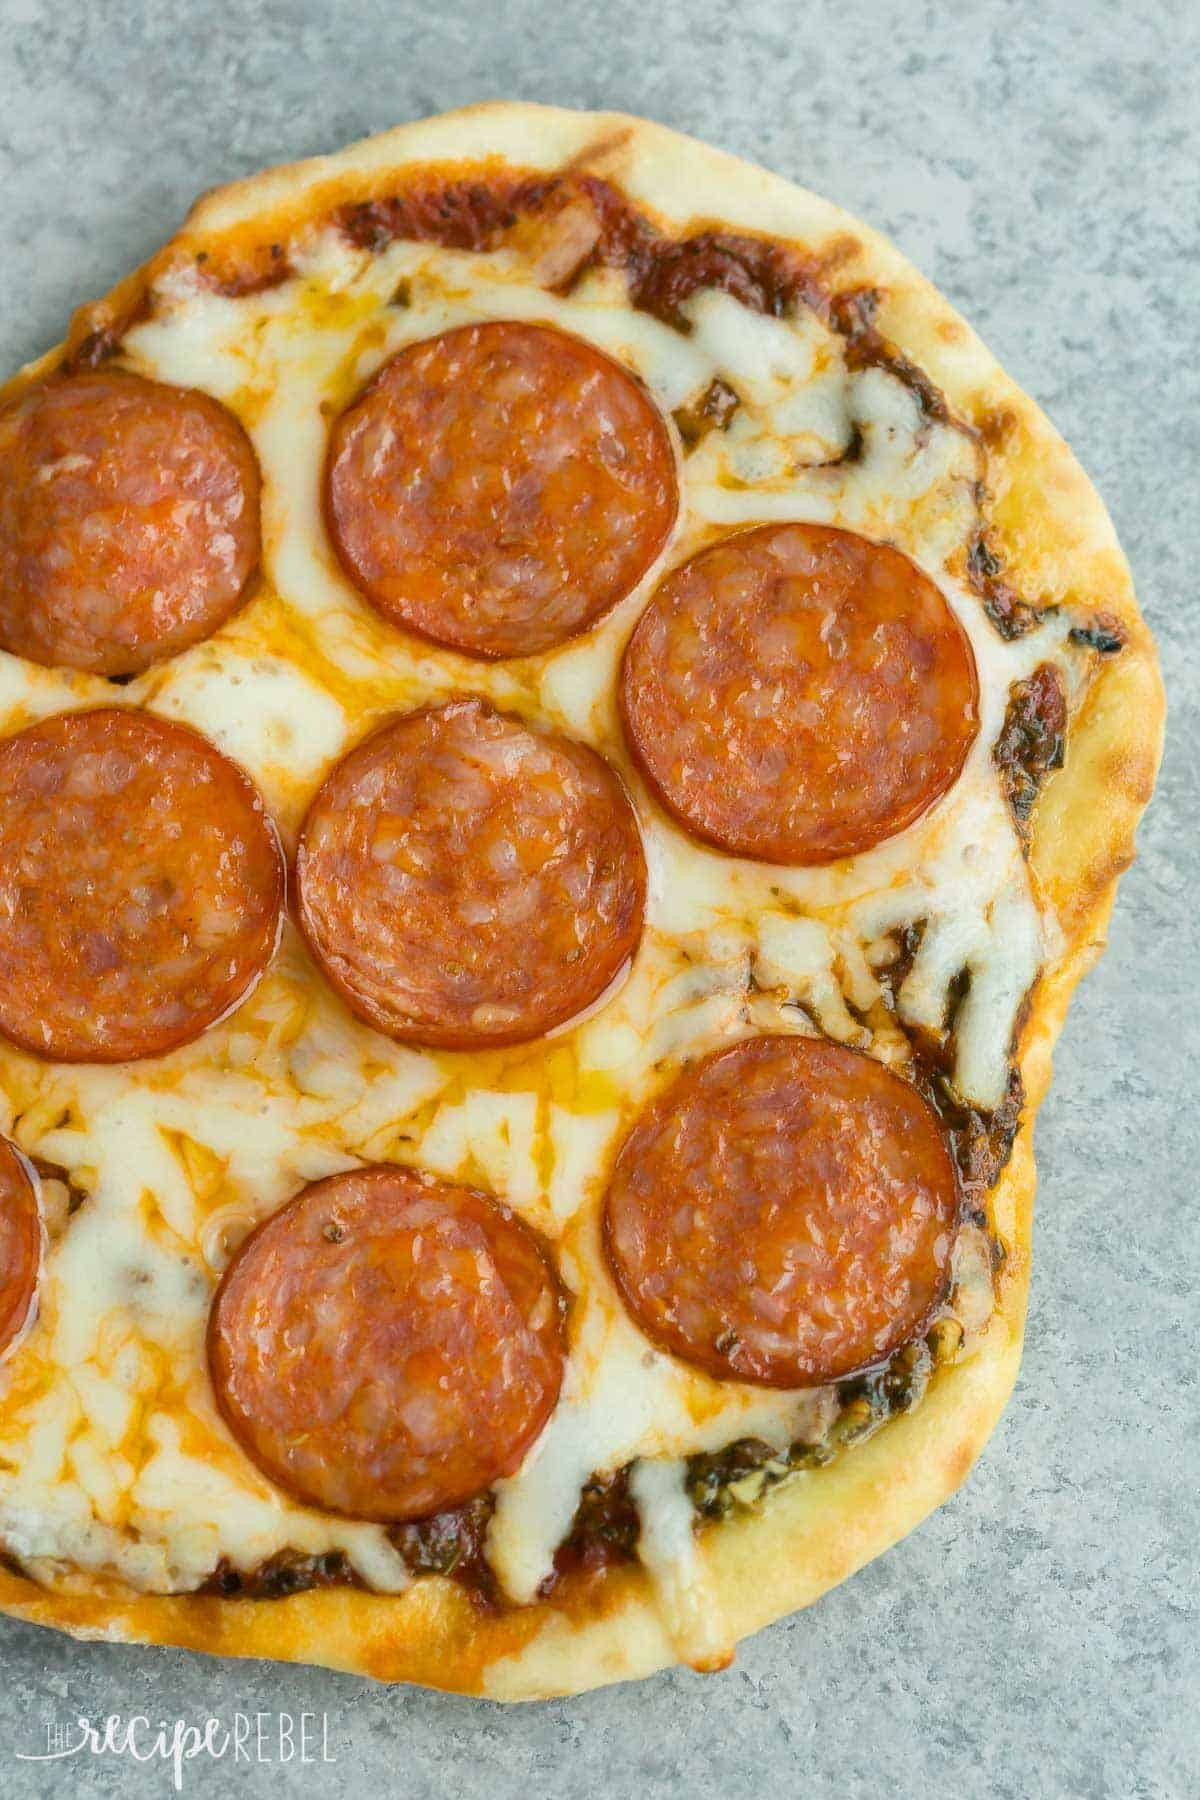 Grilled pizza is an easy summer meal! 4 flavour variations including Pesto Pepperoni, BBQ Hawaiian, Tomato Basil and Banana S'mores -- the ultimate summer dessert pizza! | grilling | summer recipe | barbecue | summer entertaining |